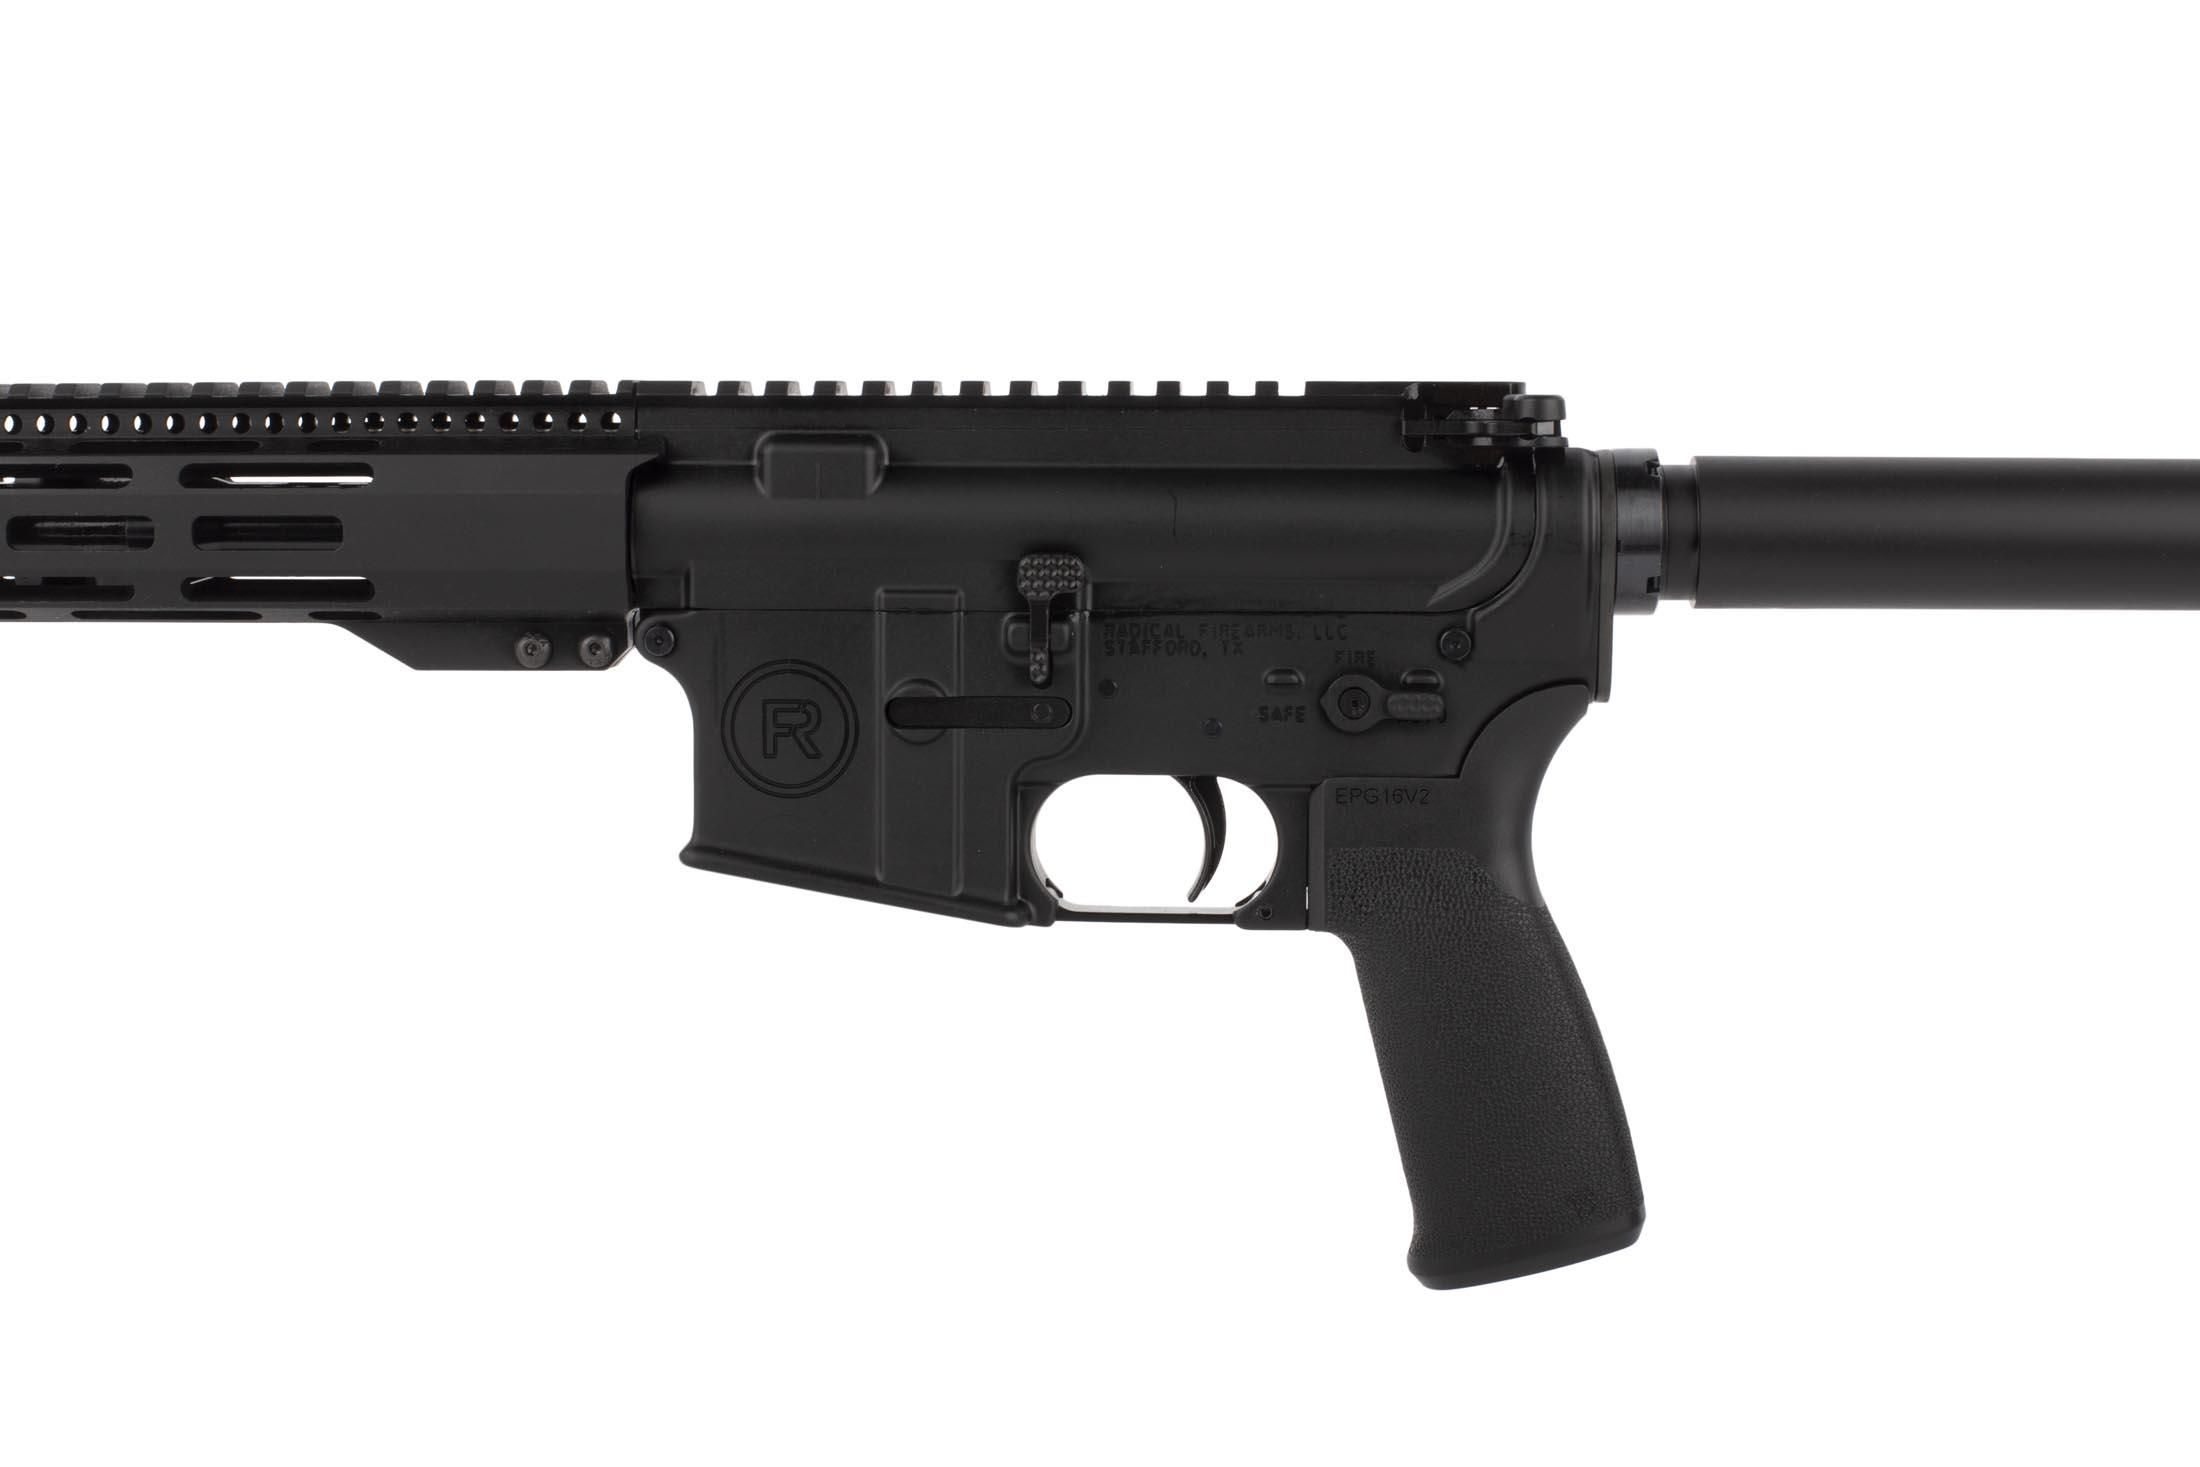 Radical Firearms 7.5in 5.56 NATO pistol with Mission First Tactical pistol grip is compatible with .223 Remington